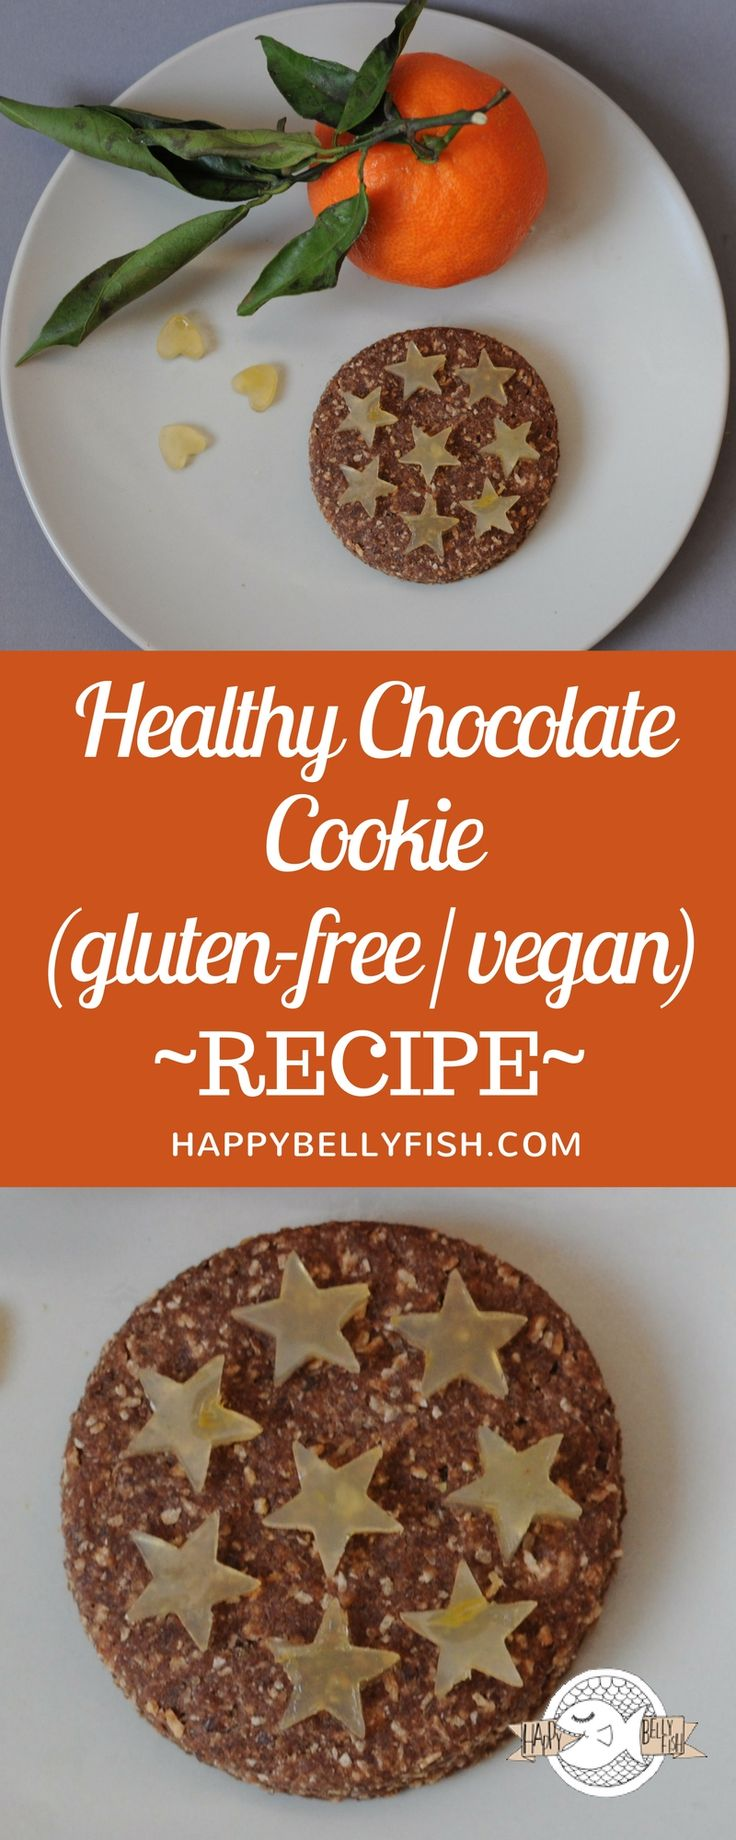 Healthy Chocolate Cookie: Gluten-free and Vegan Recipe https://happybellyfish.com/recipes/healthy-chocolate-cookie-gluten-free-vegan-recipe/